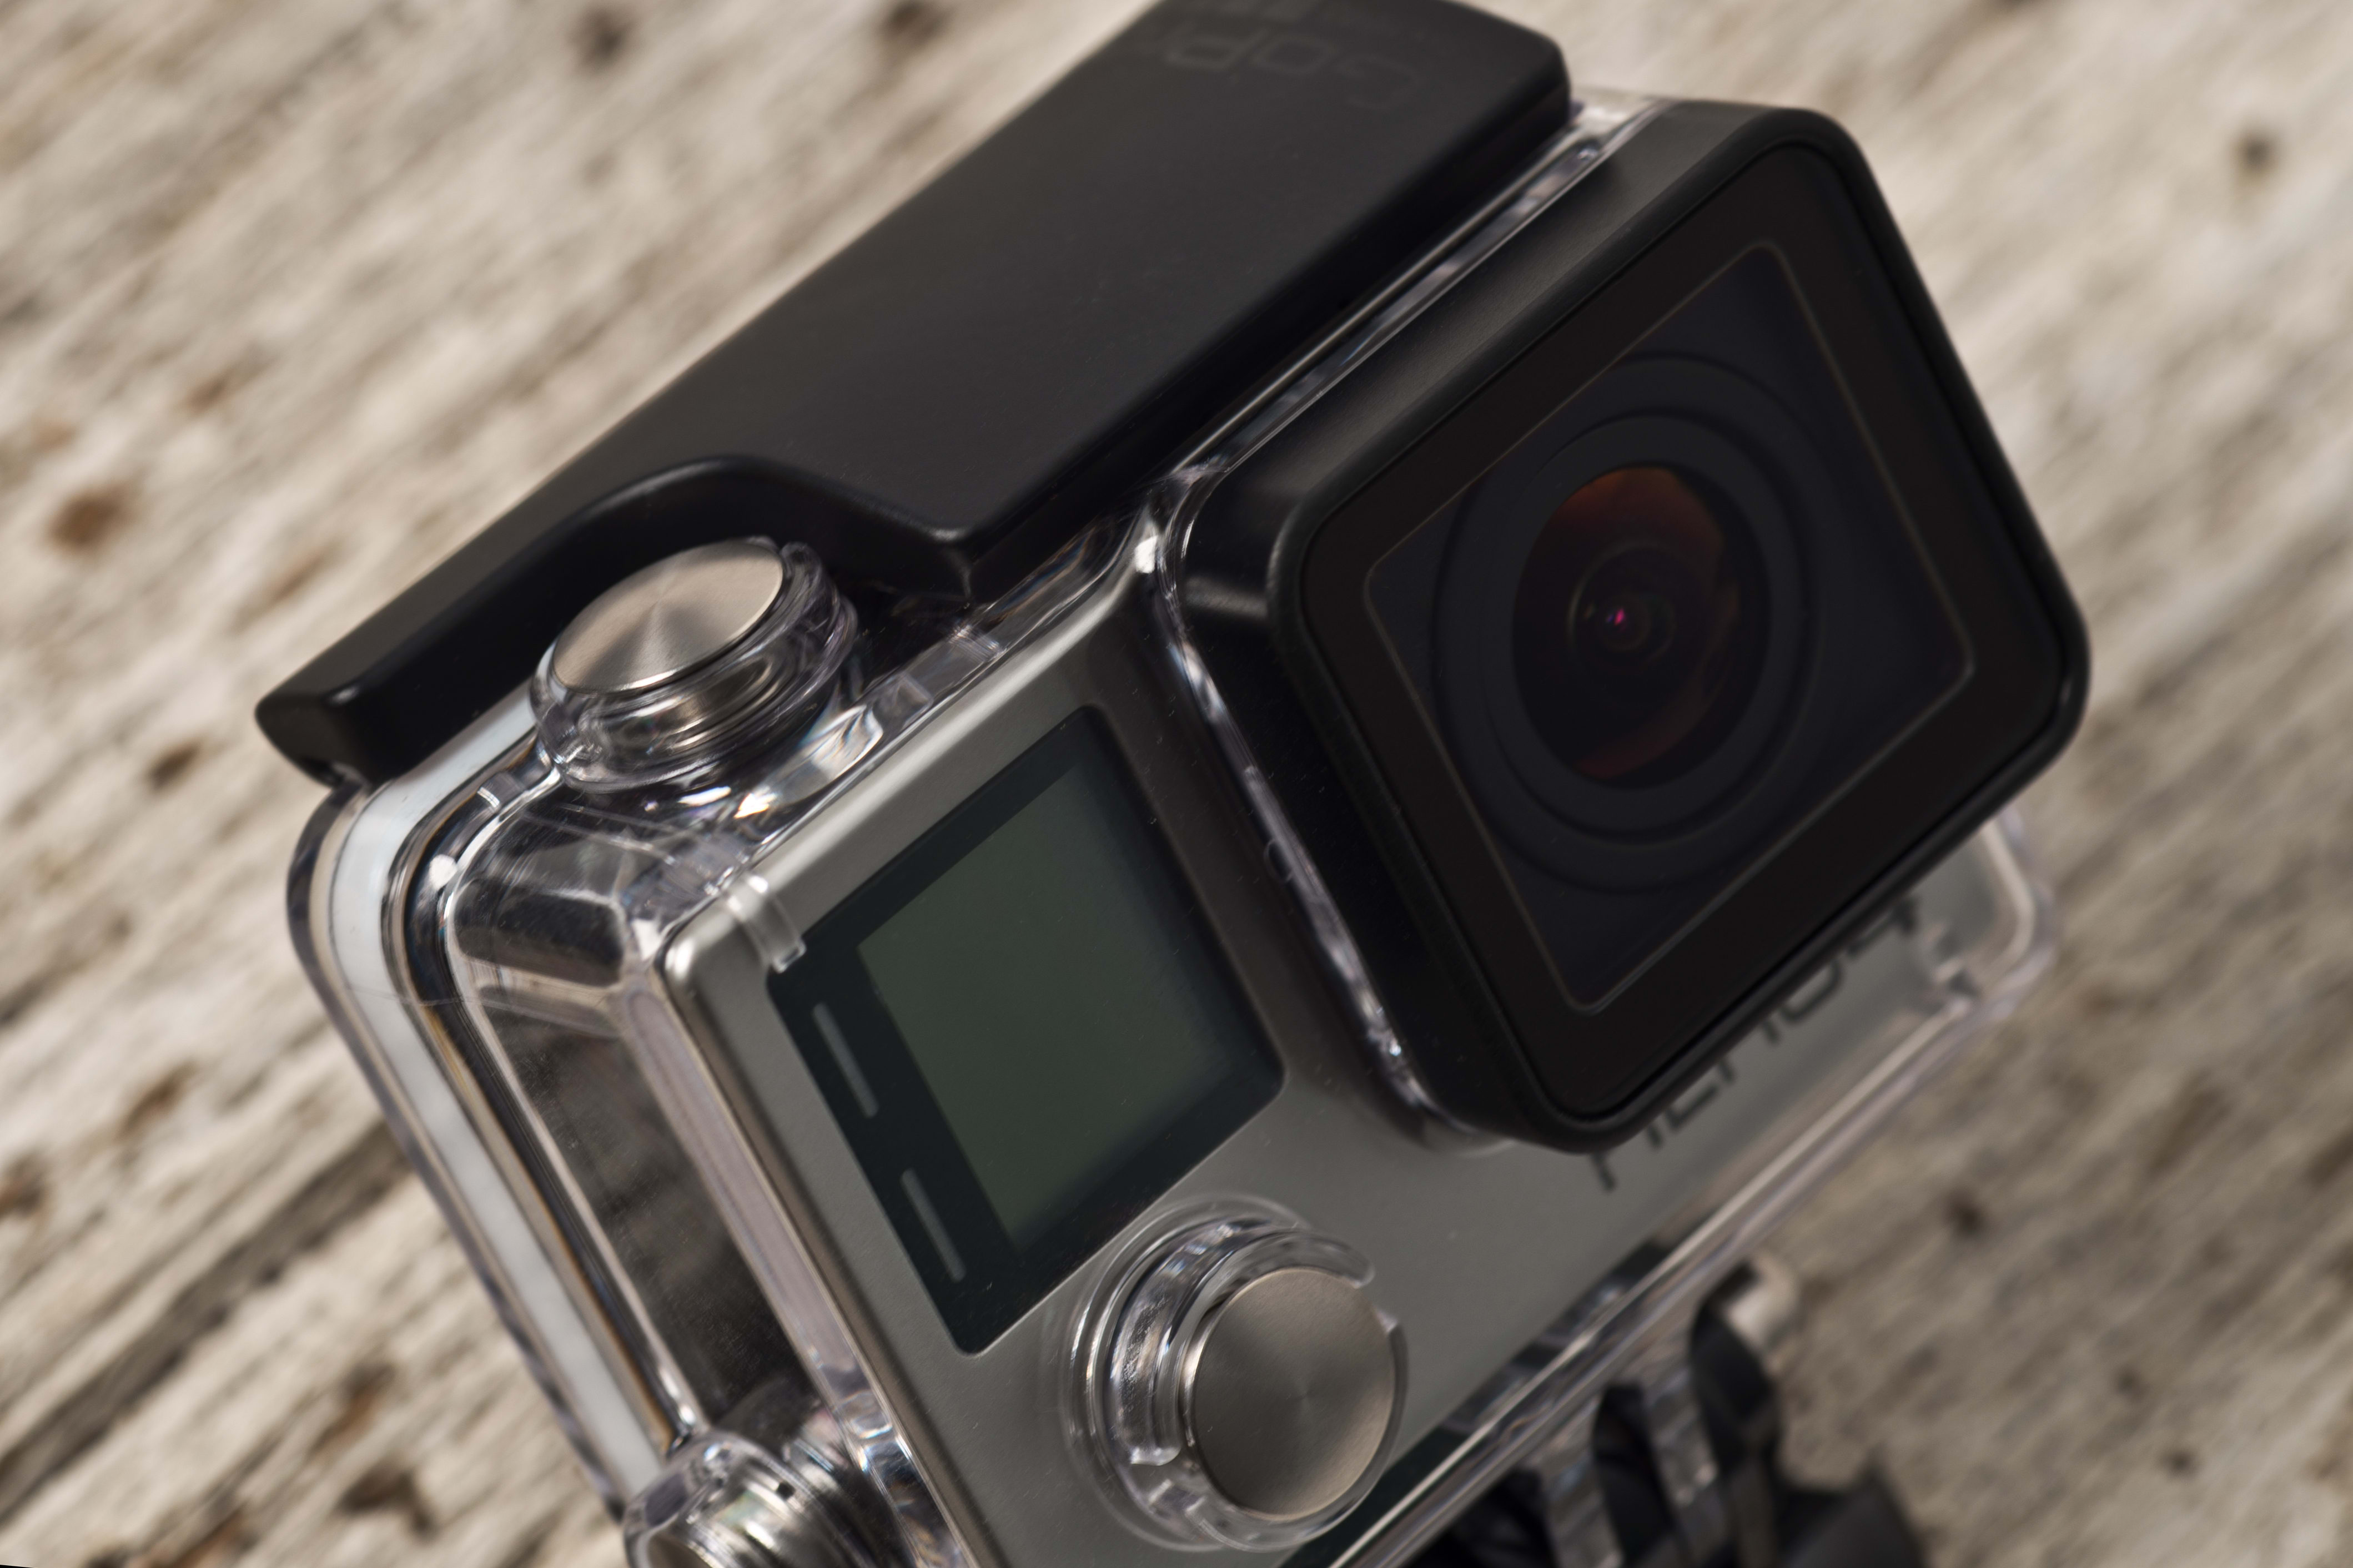 A photograph of the GoPro Hero 4 Black's case.